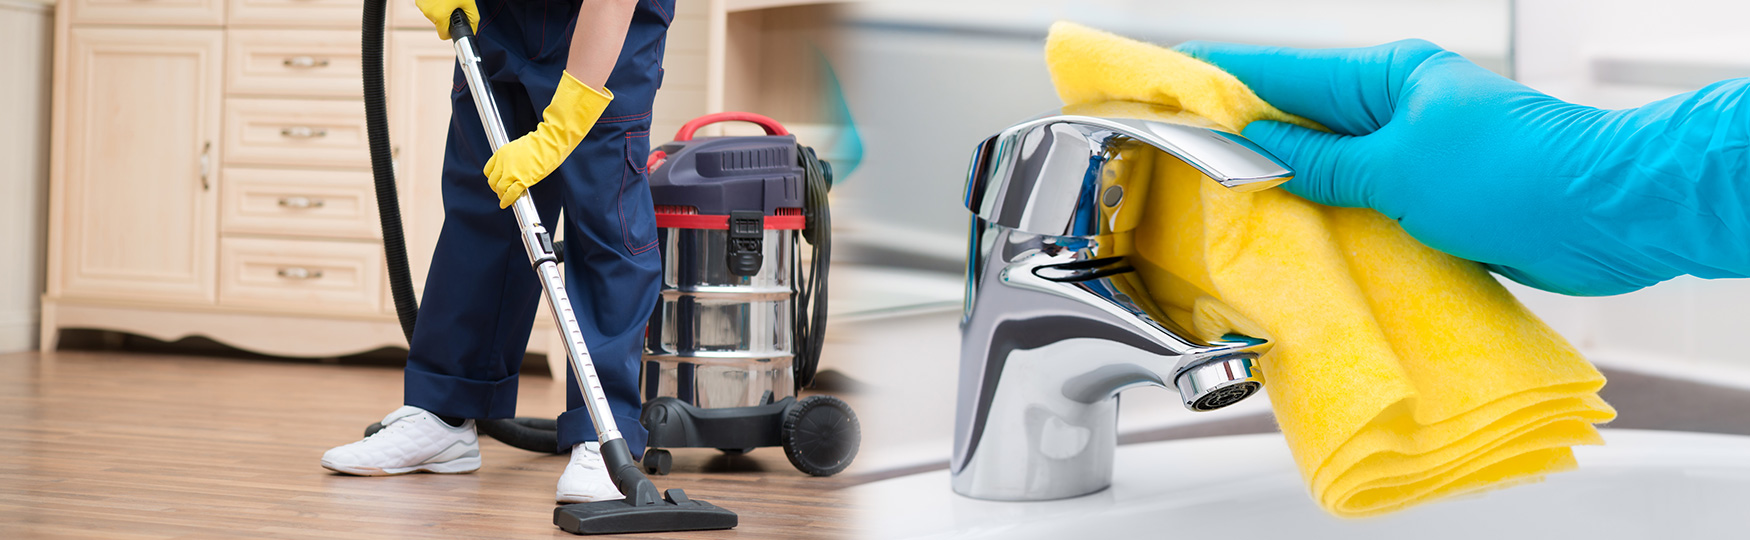 Tips to get the bond cleaning with an end of lease cleaning service in Adelaide